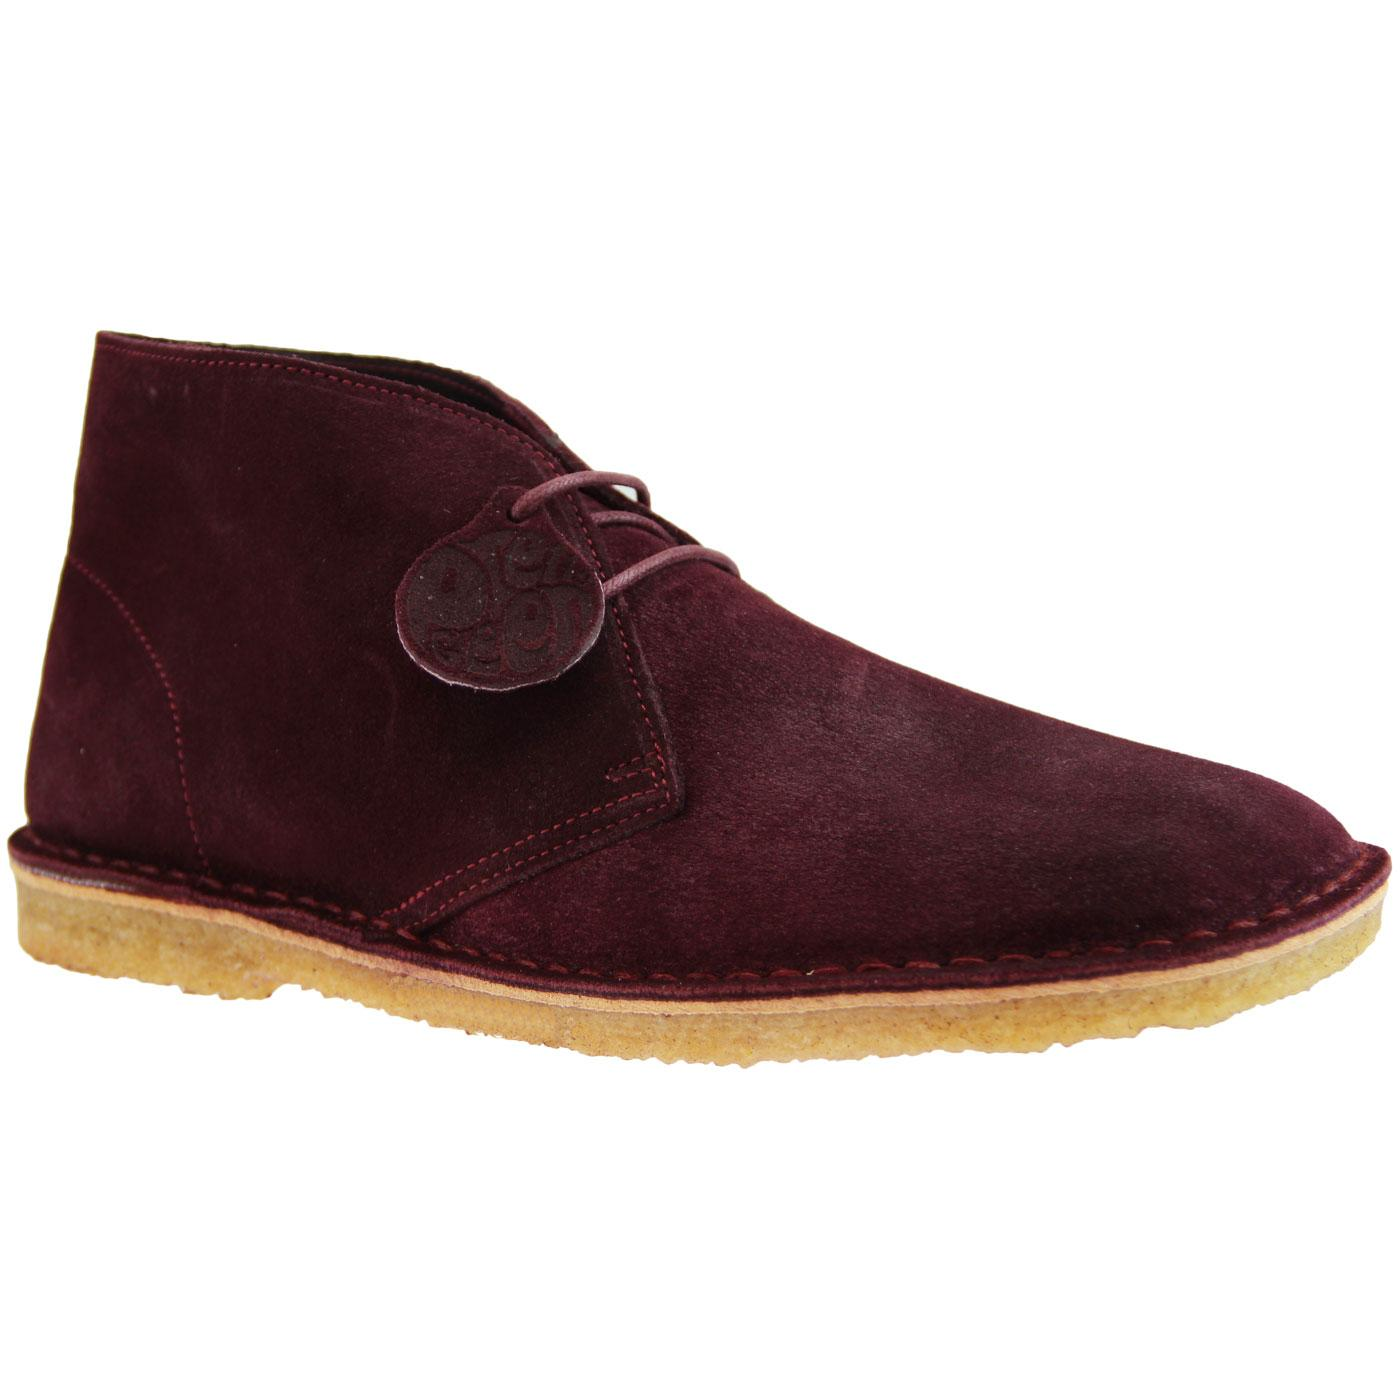 PRETTY GREEN Mod Crepe Sole Desert Boots BURGUNDY